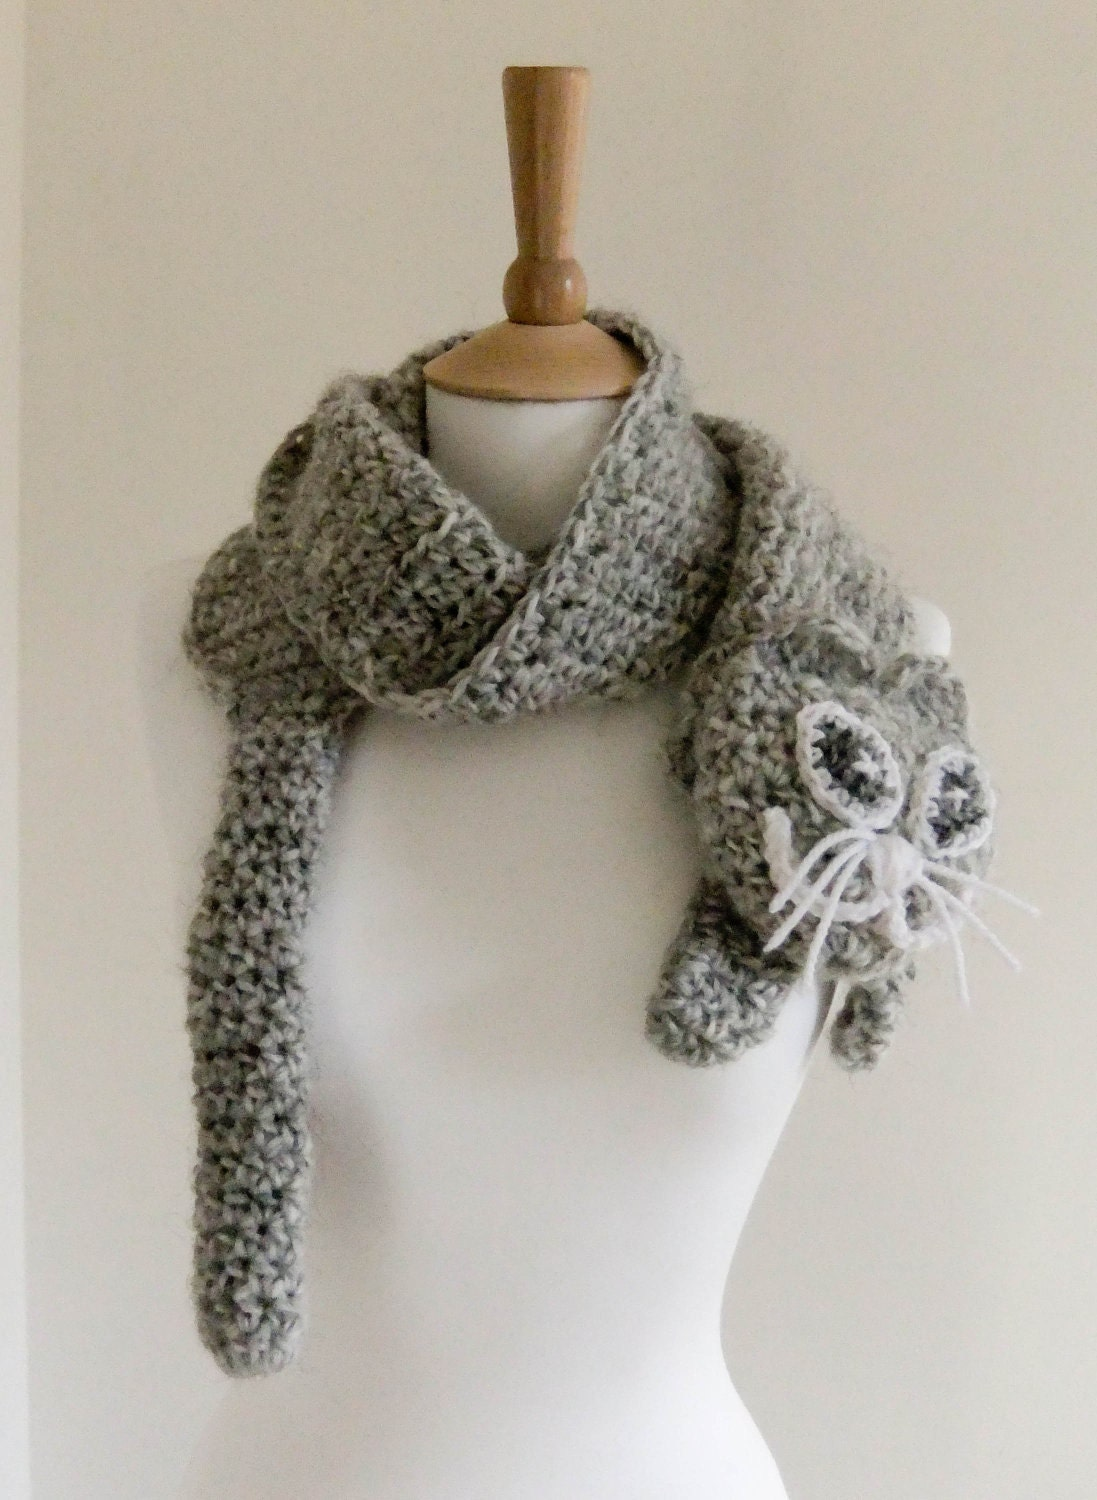 Crochet Patterns Neck Scarves : PDF CROCHET PATTERN Scarf Kitty cute cat grey gray neck warmer Neck ...